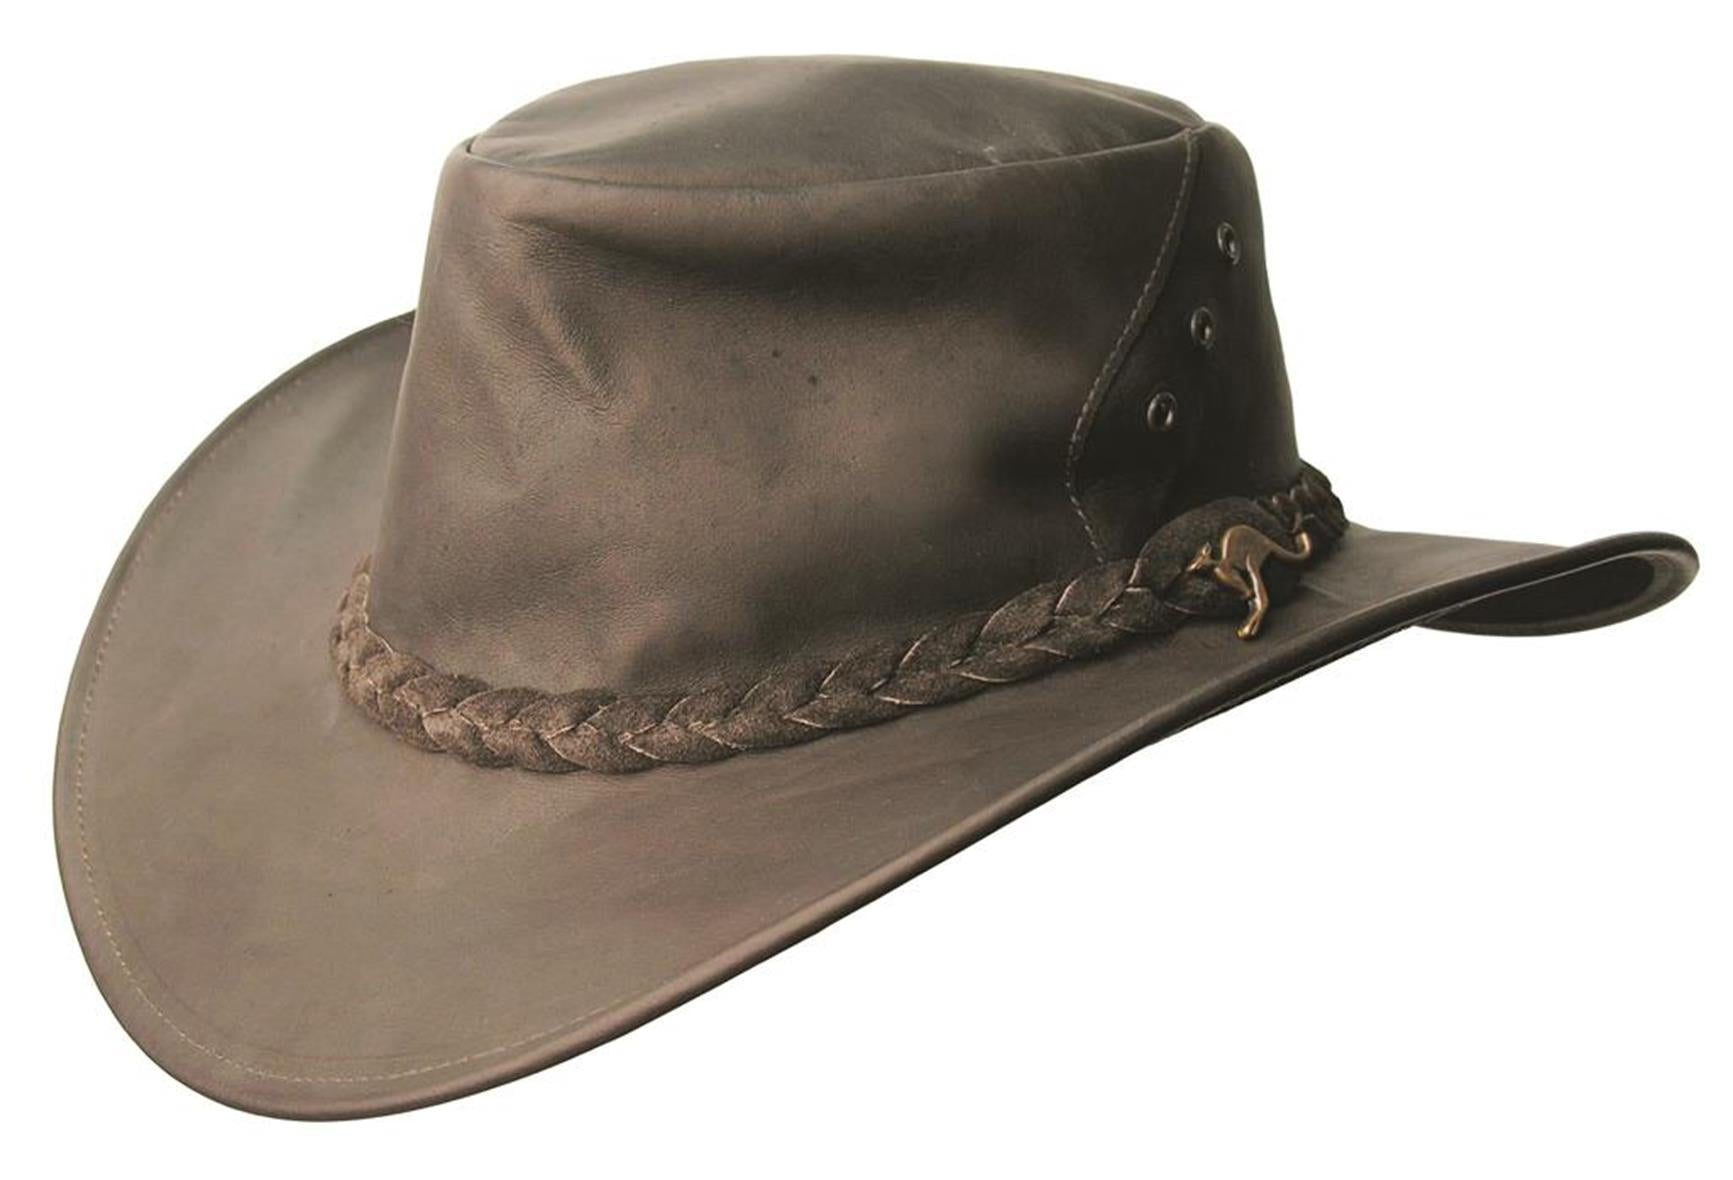 Australian Kangaroo Leather Traveler Hat Darwin trip Luggage hat in brown - OUT OF AUSTRALIA | Kakadu Traders Australia